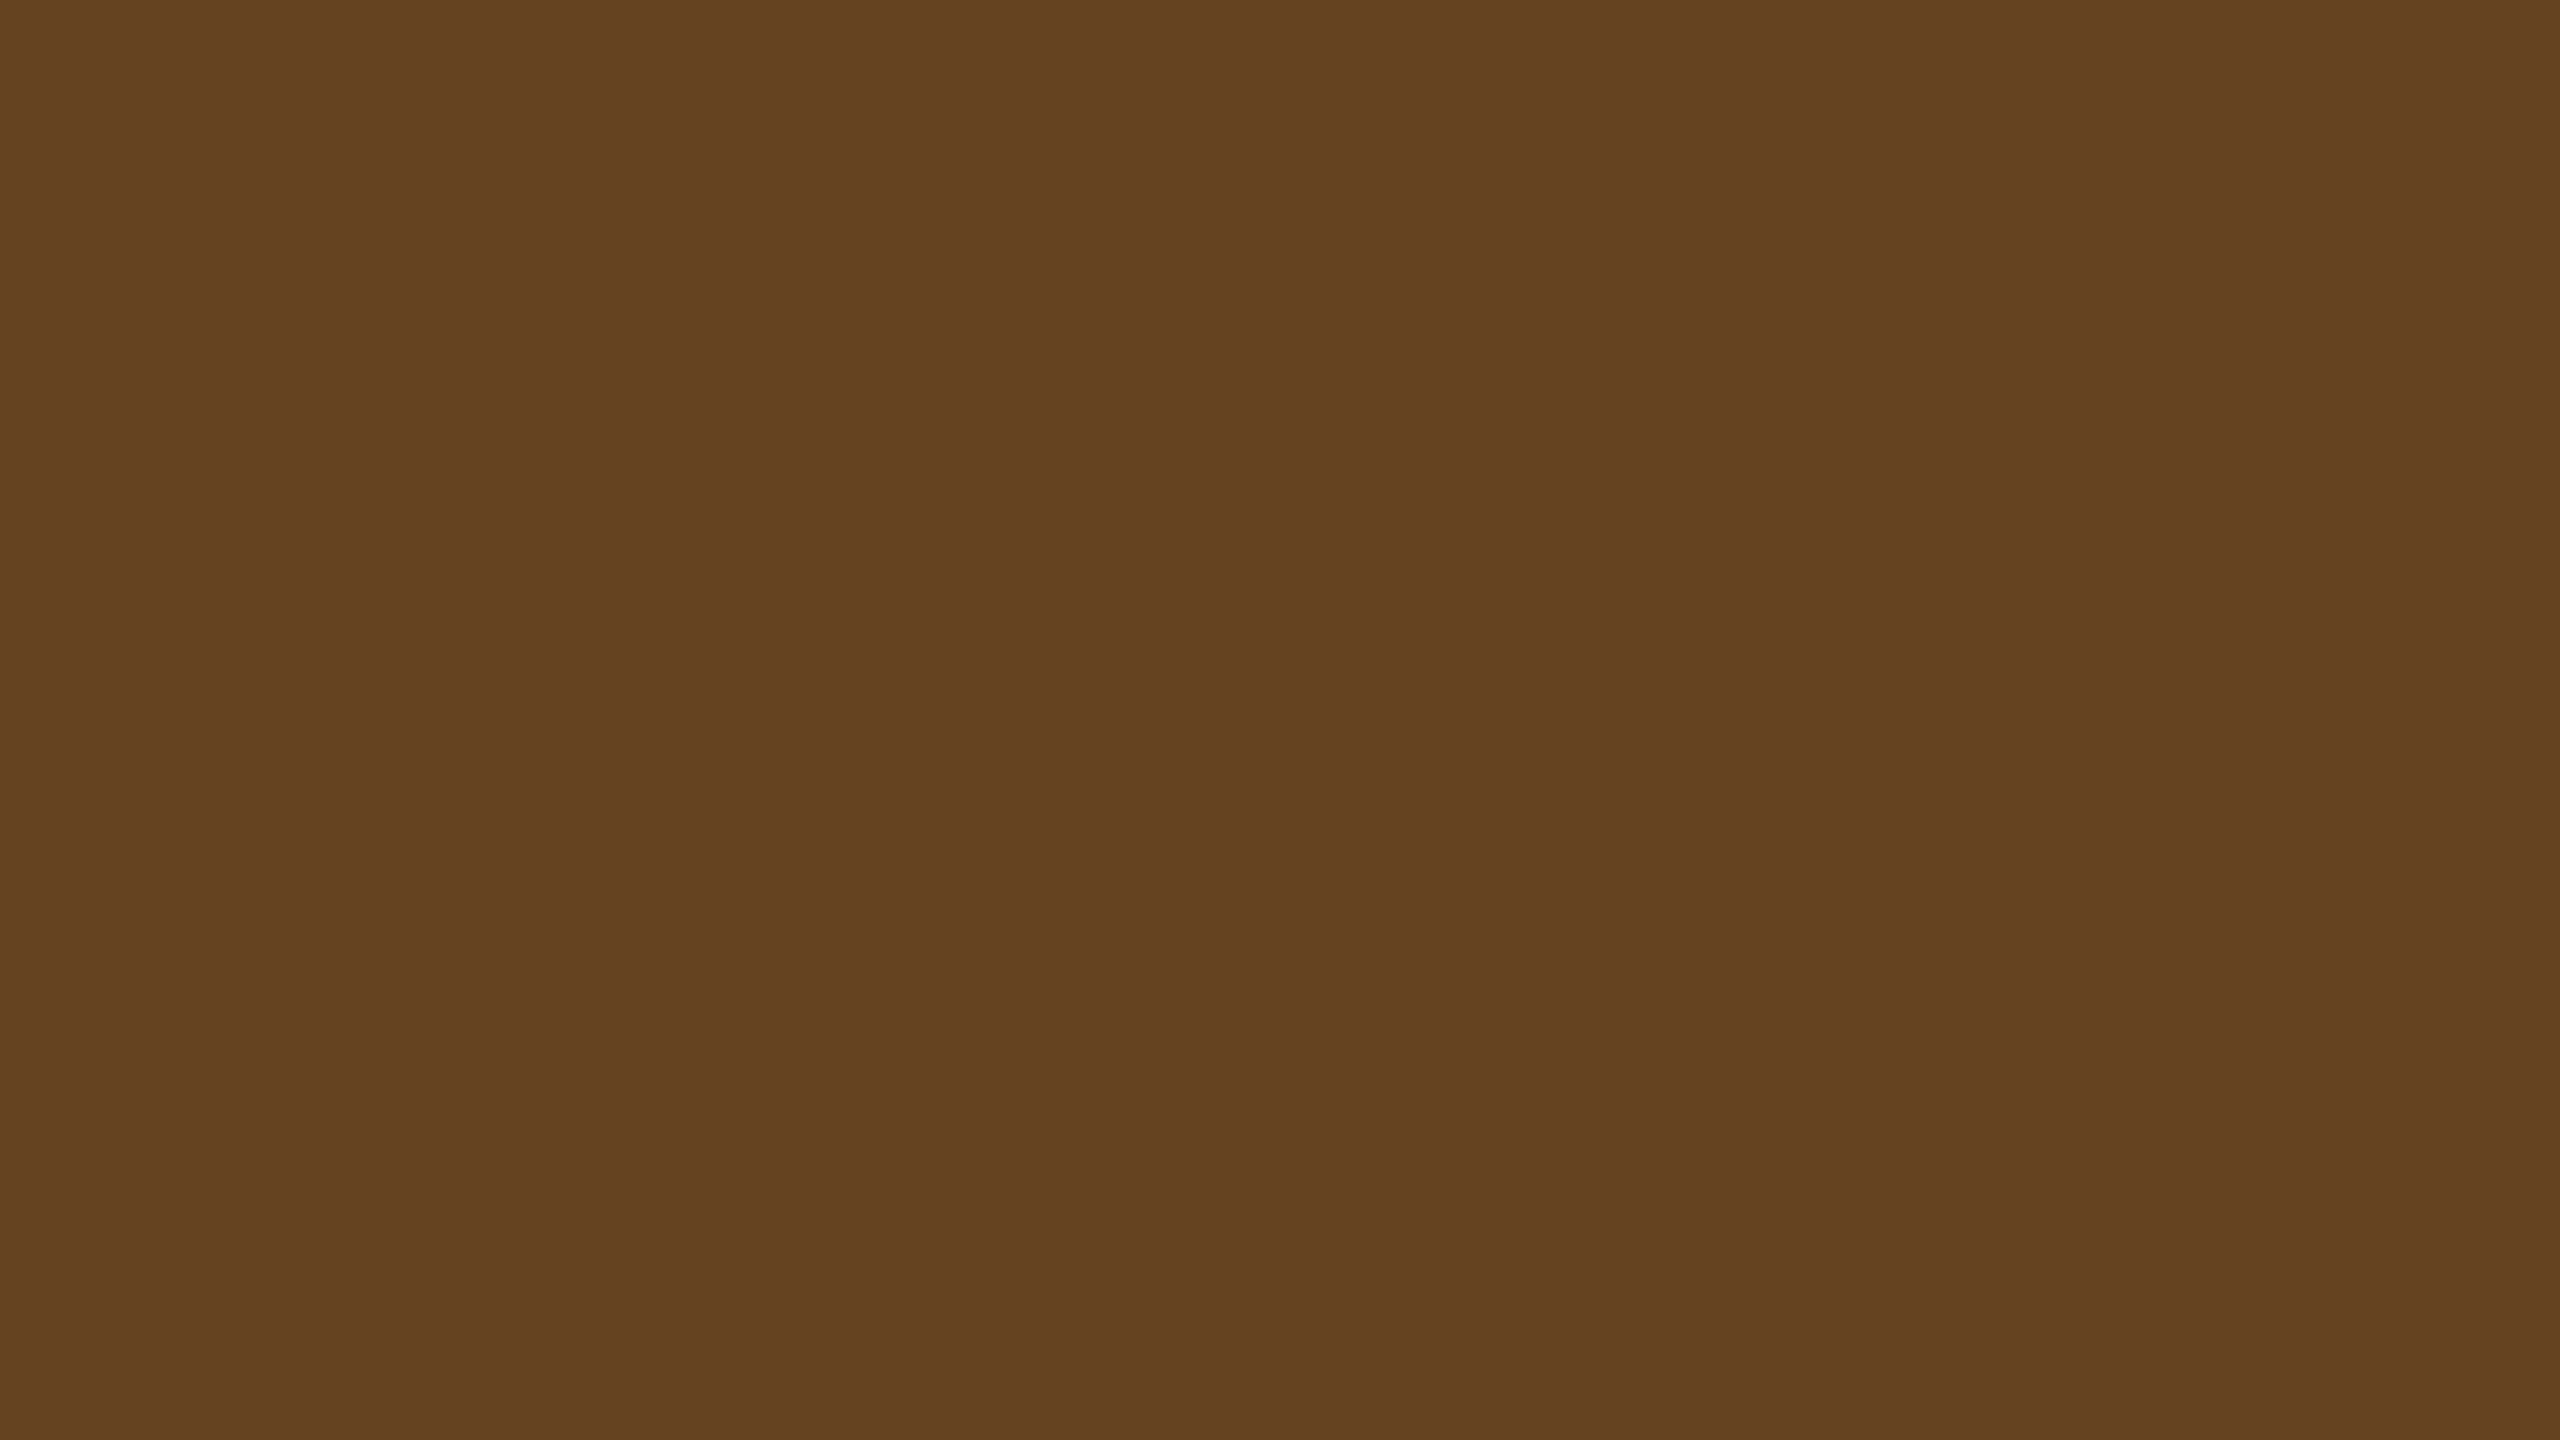 2560x1440 Solid Brown Wallpaper